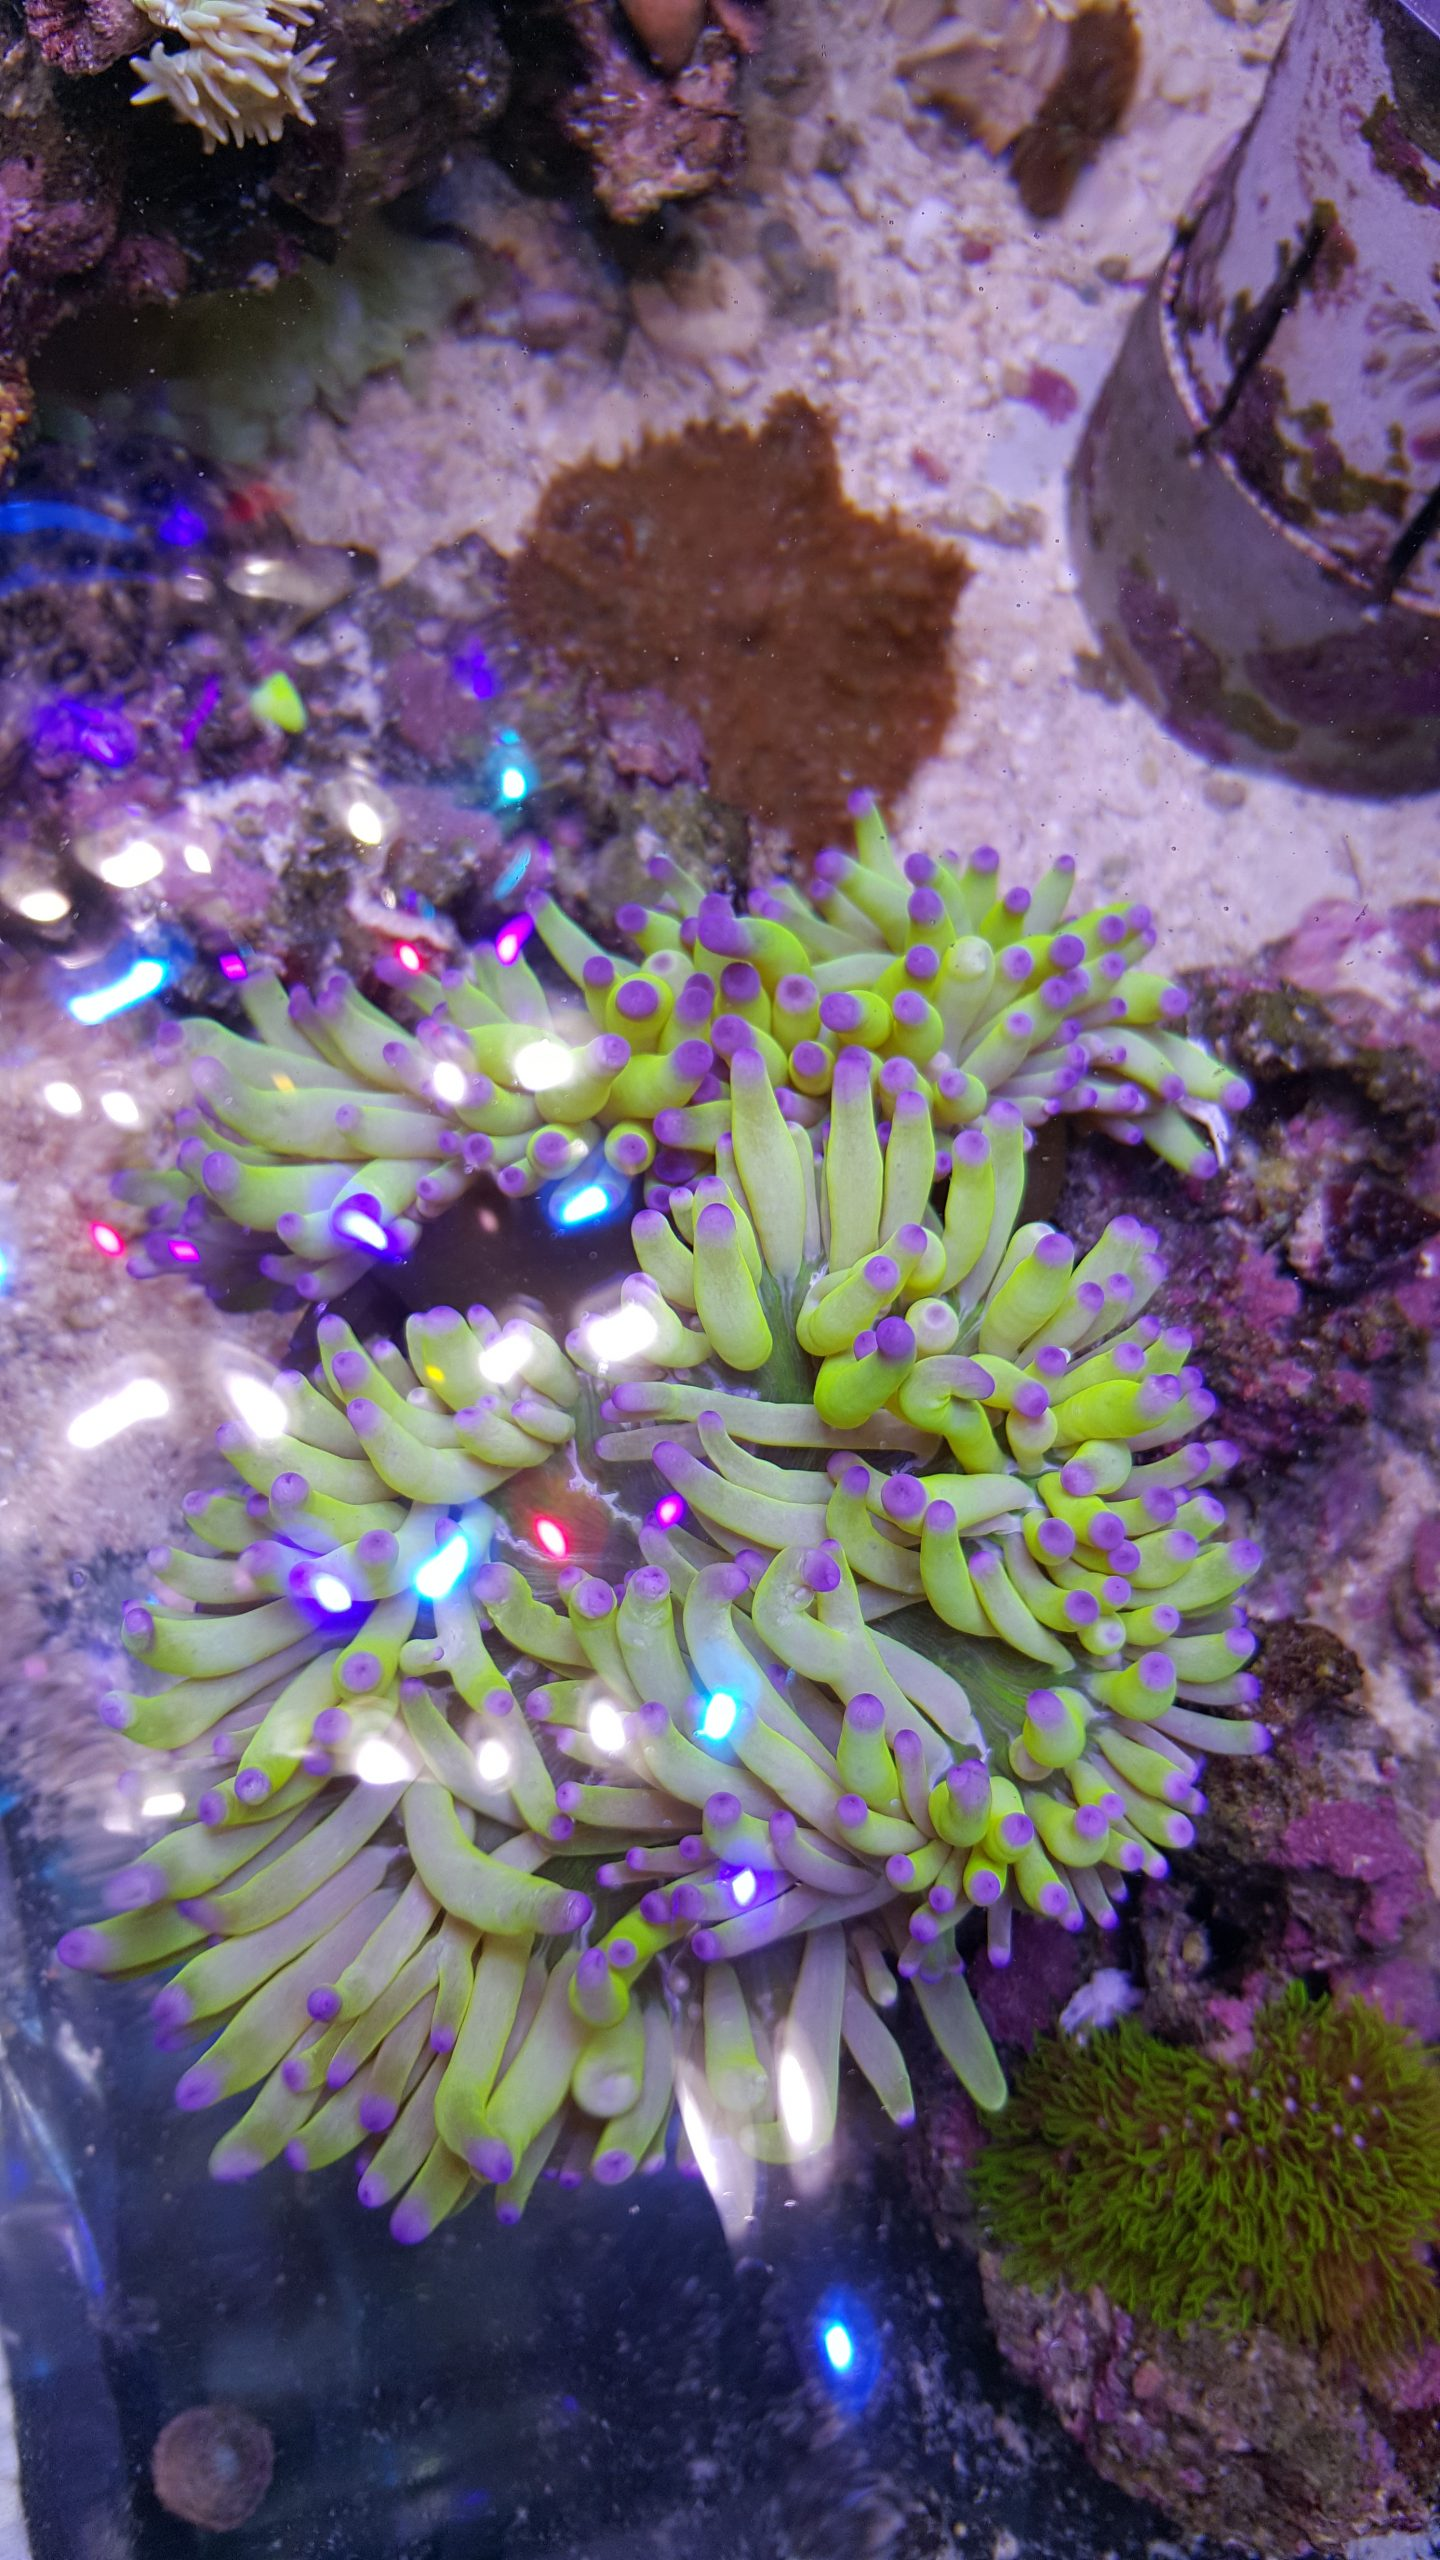 This striking Ritteri anemone is one that you don't get to see in every shipment